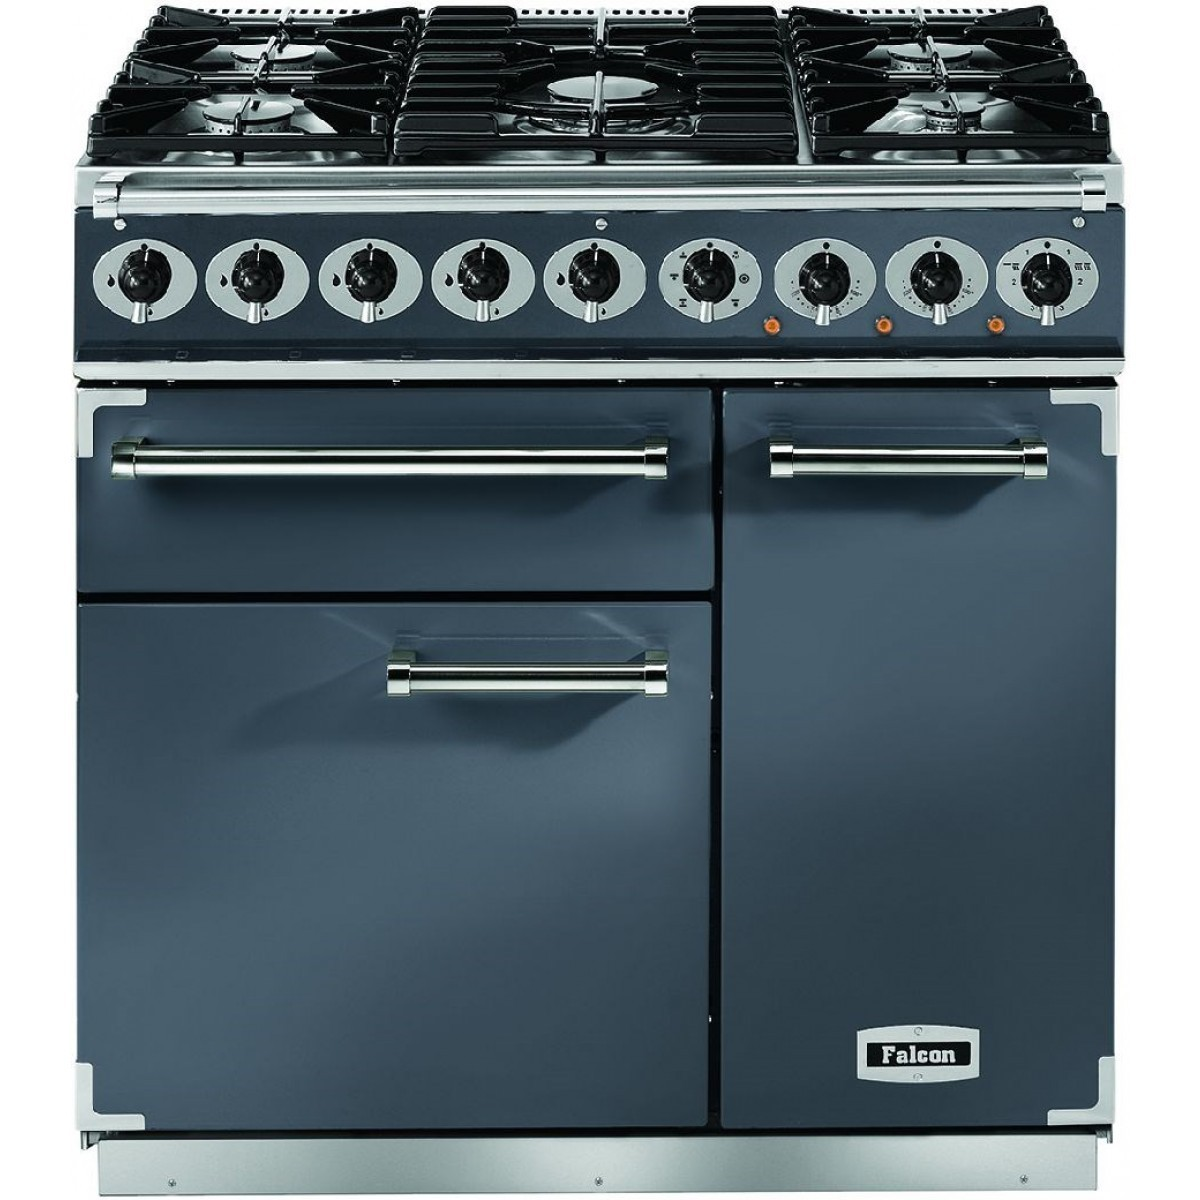 Falcon Deluxe 900 F900DXDFSL/NM Dual Fuel Slate/Chrome Range Cooker